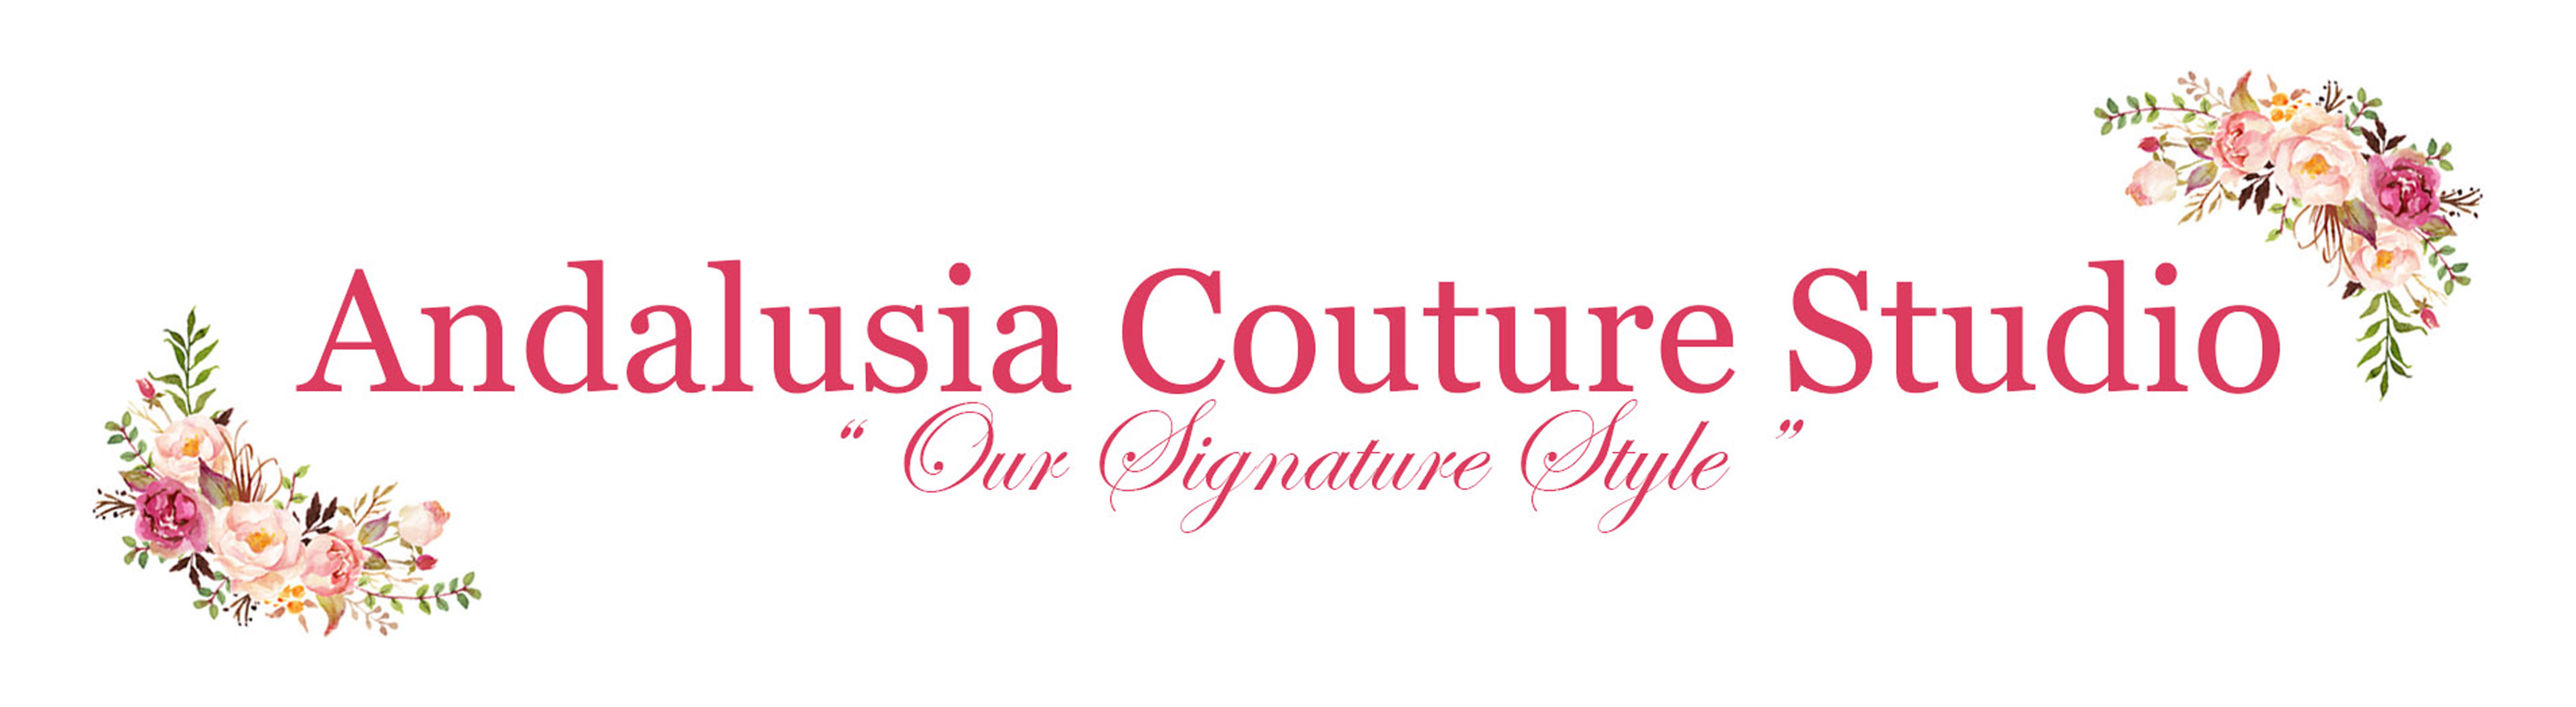 ANDALUSIA COUTURE